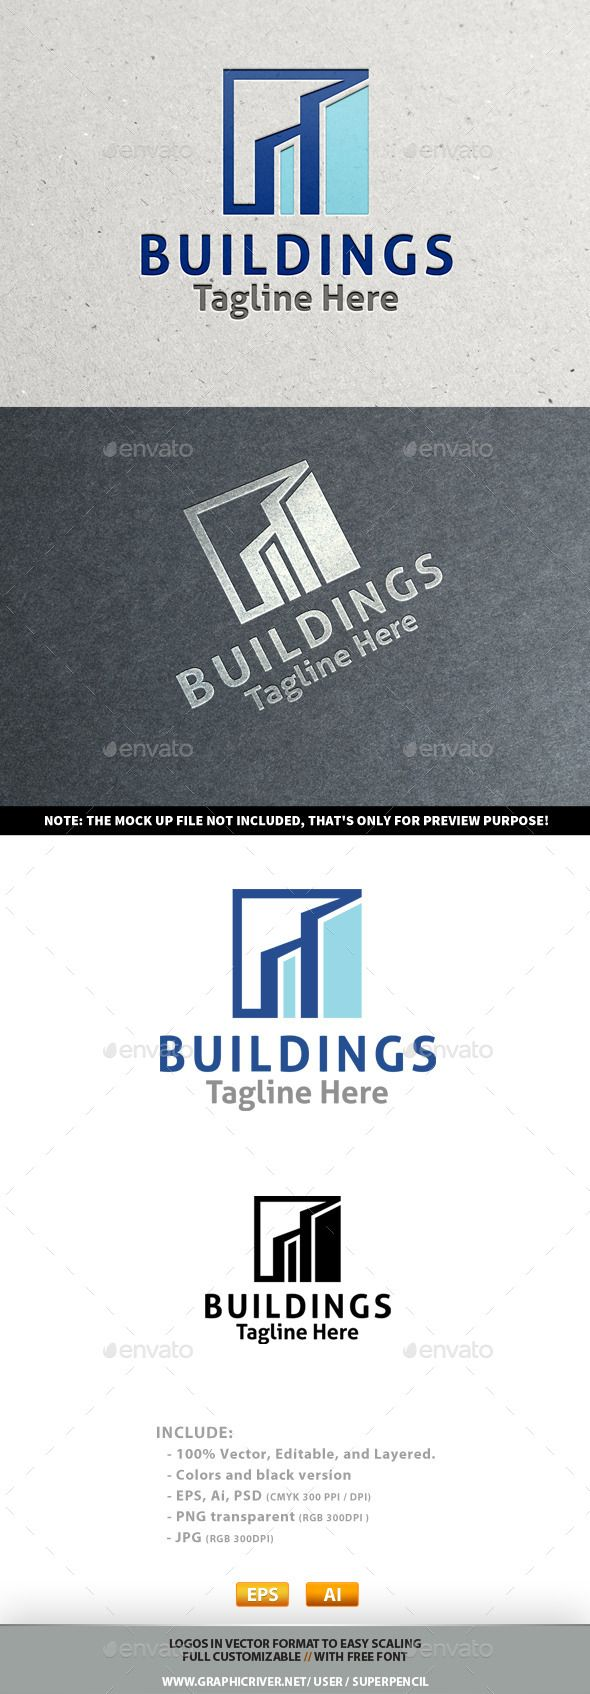 Buildings Logo Design Template Vector #logotype Download it here: http://graphicriver.net/item/buildings-logo/10218194?s_rank=716?ref=nexion